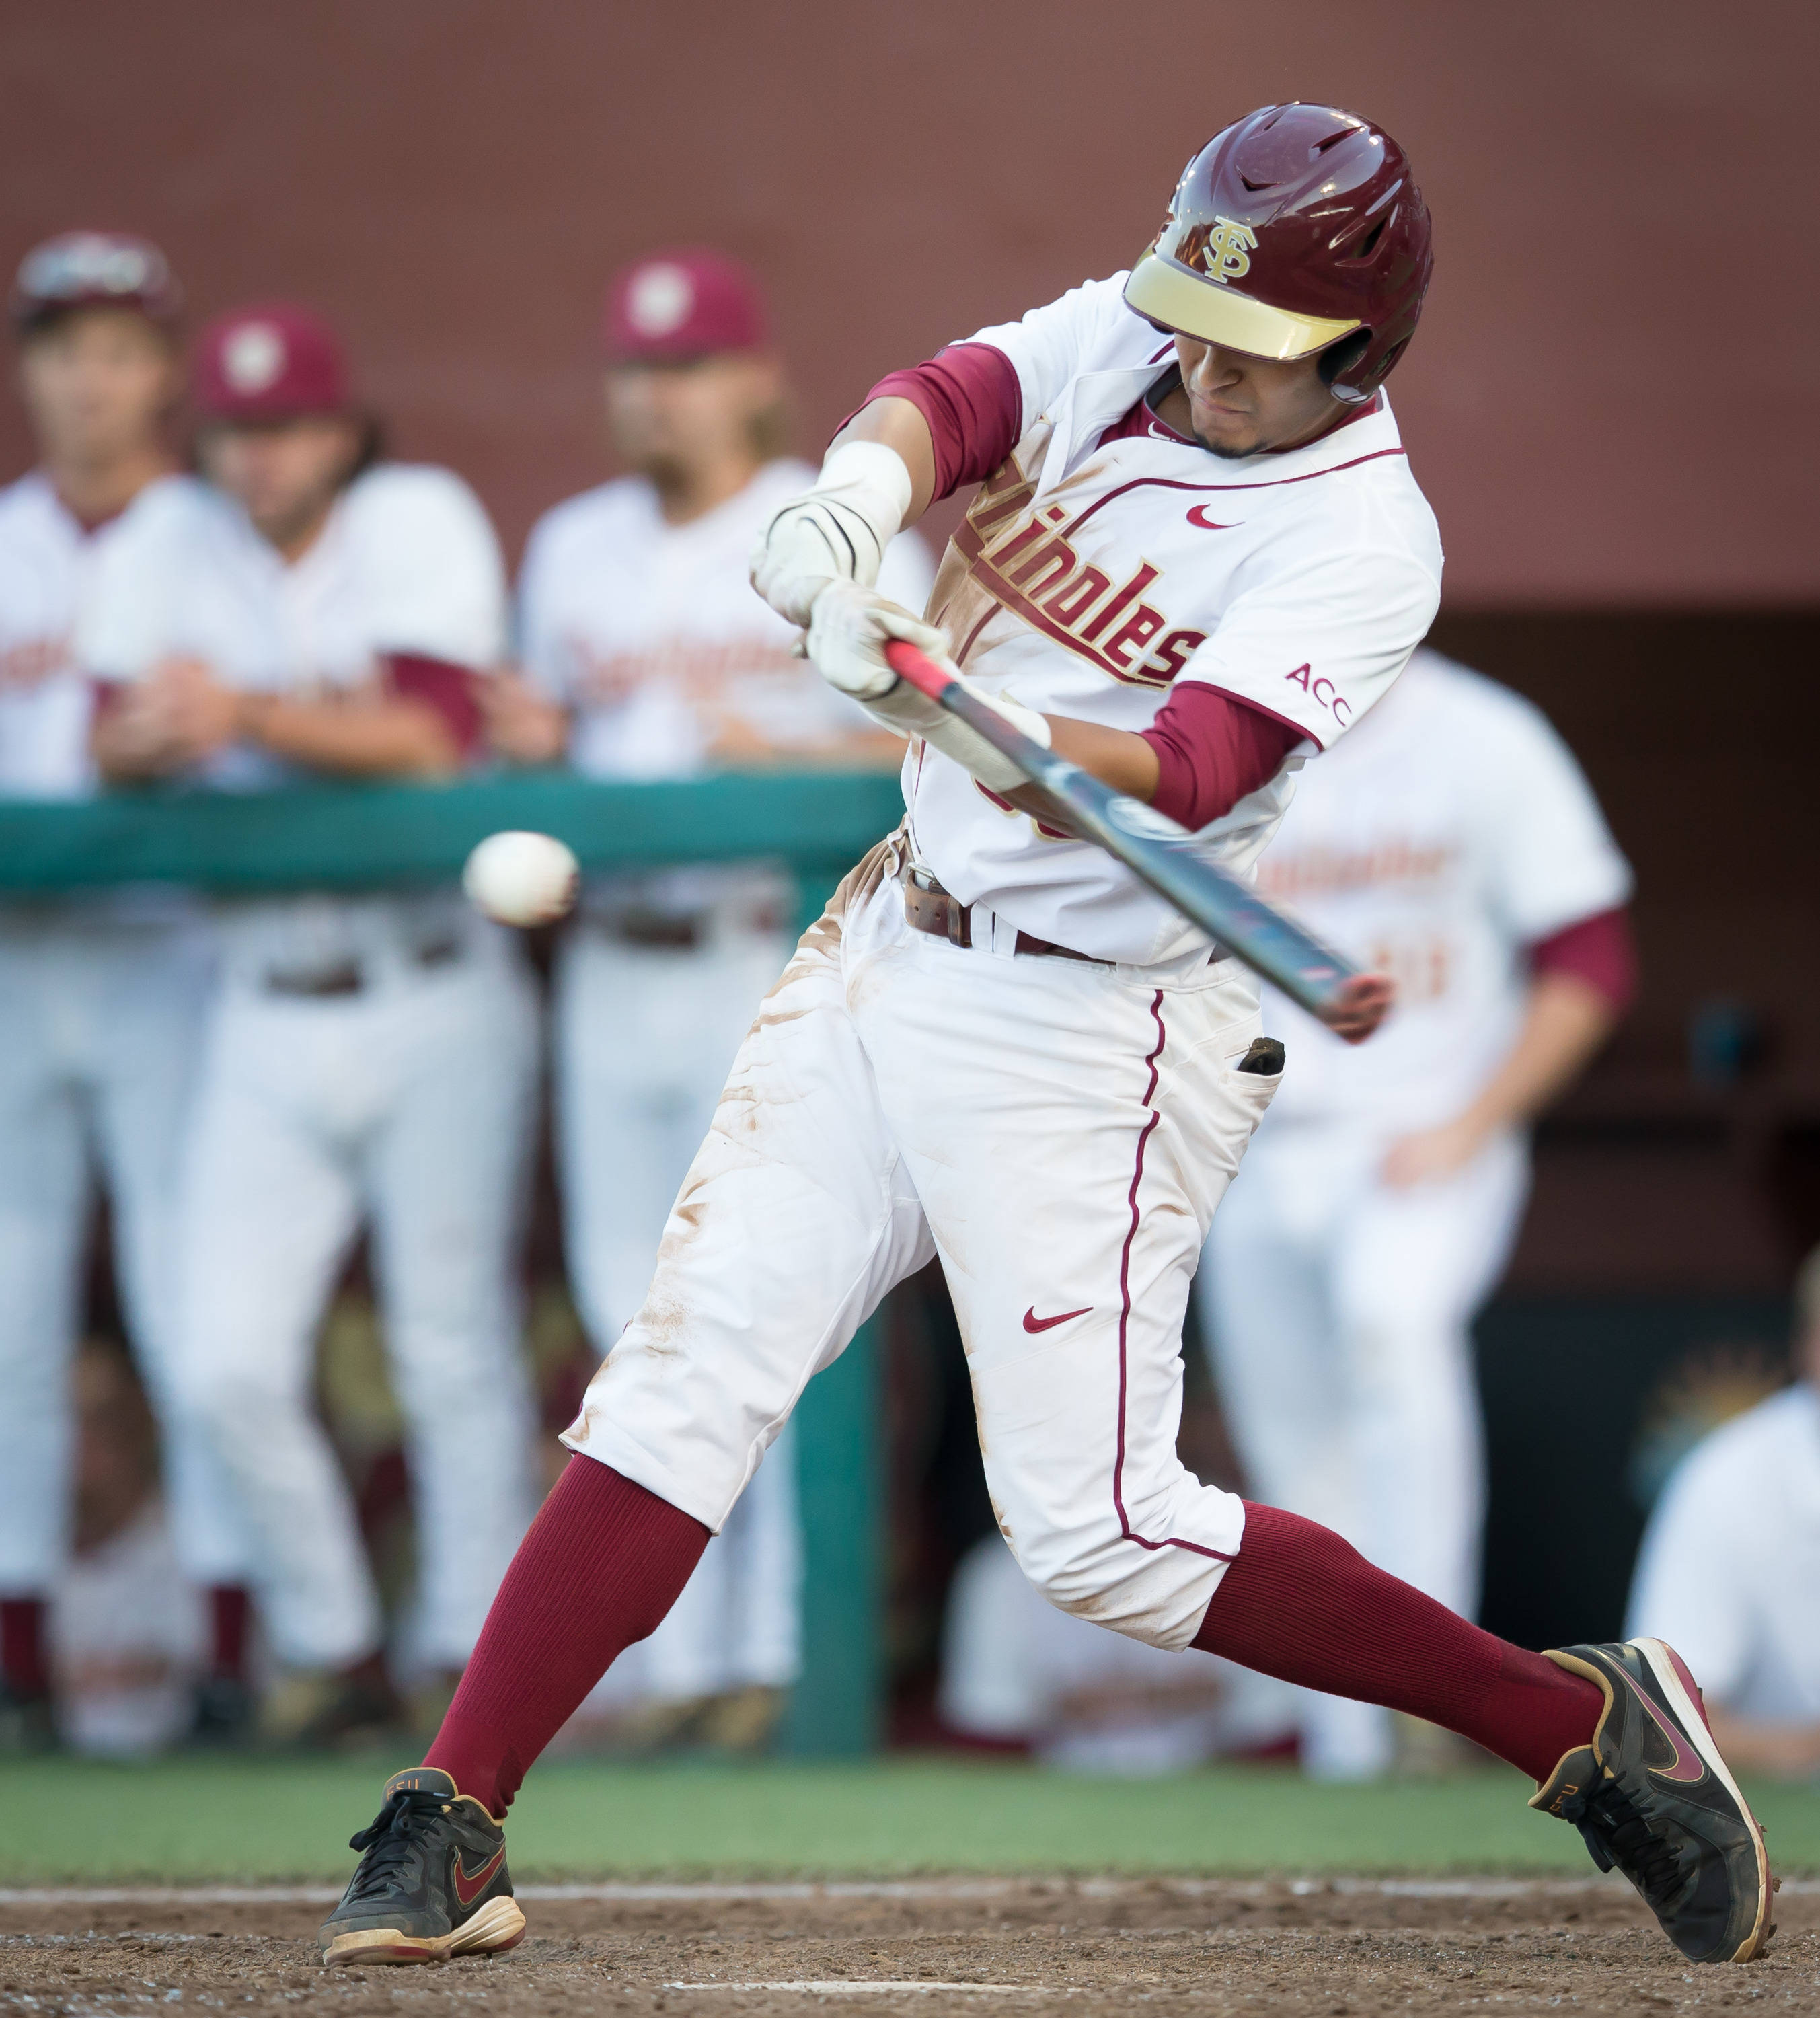 Jose Brizuela (53) went 3 for 4 with 2 RBI's.  Here he connects for a sacrifice fly driving in DJ Stewart.